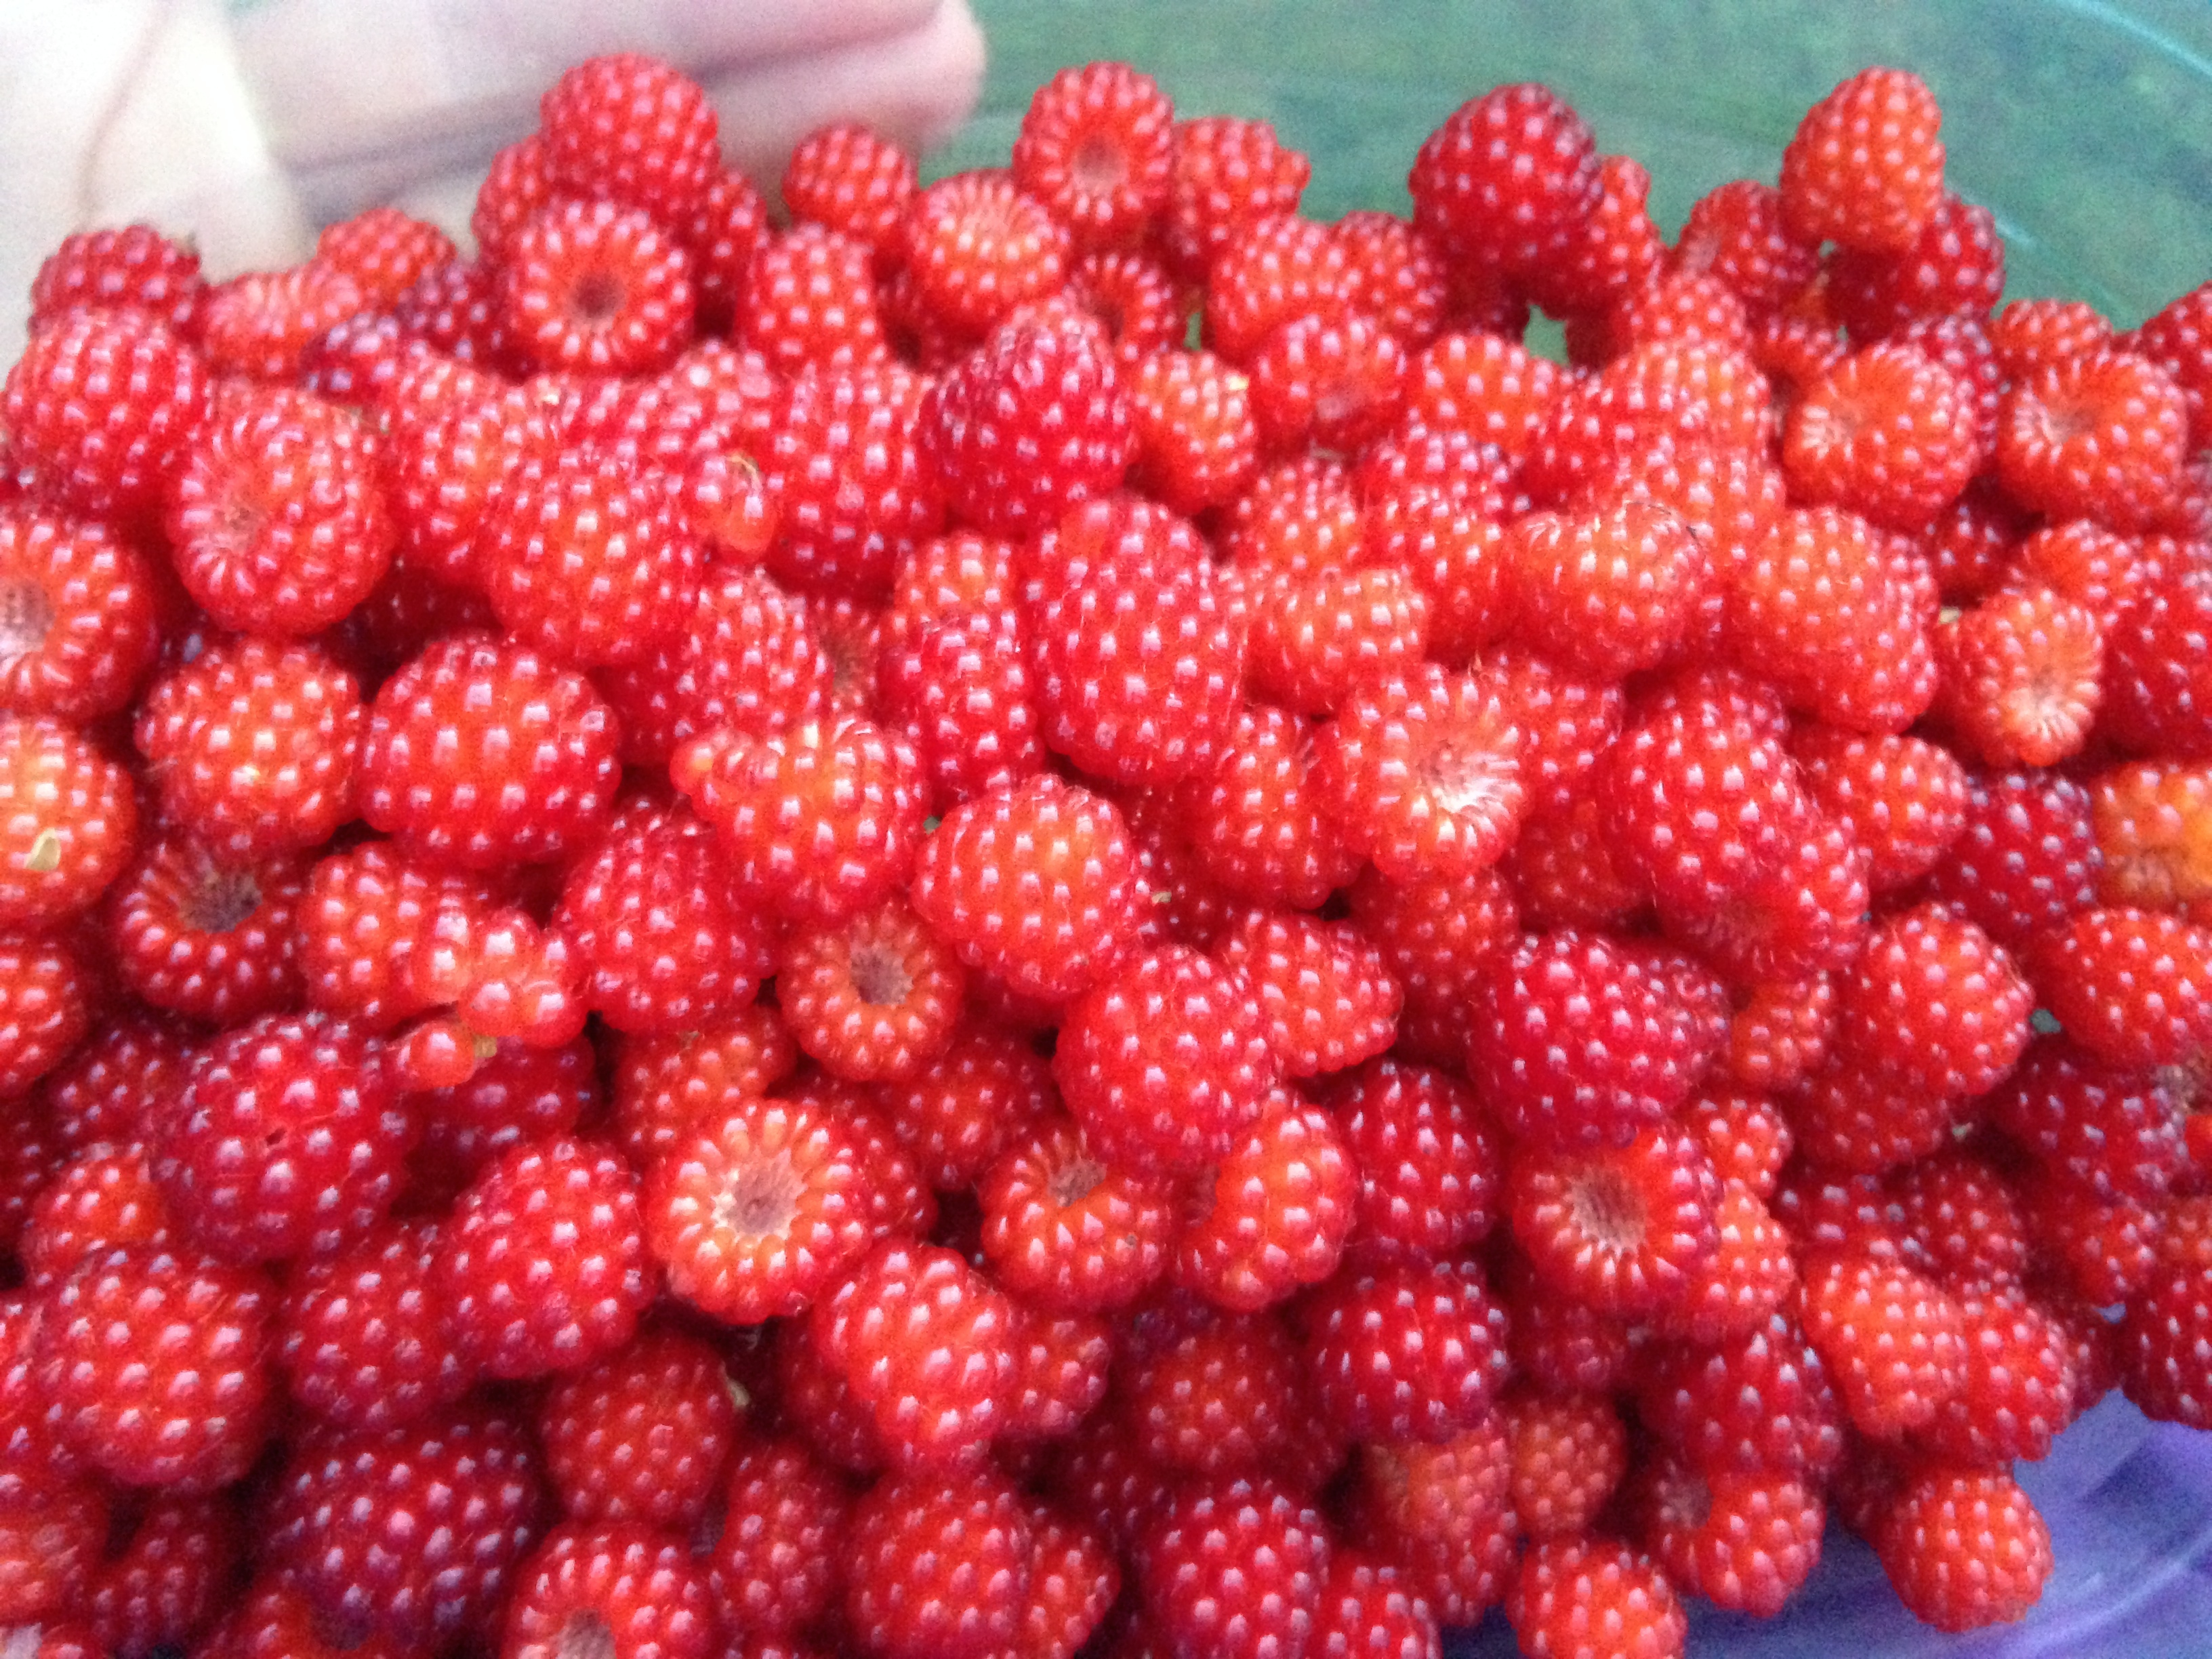 Some of the Yummy berries I picked.